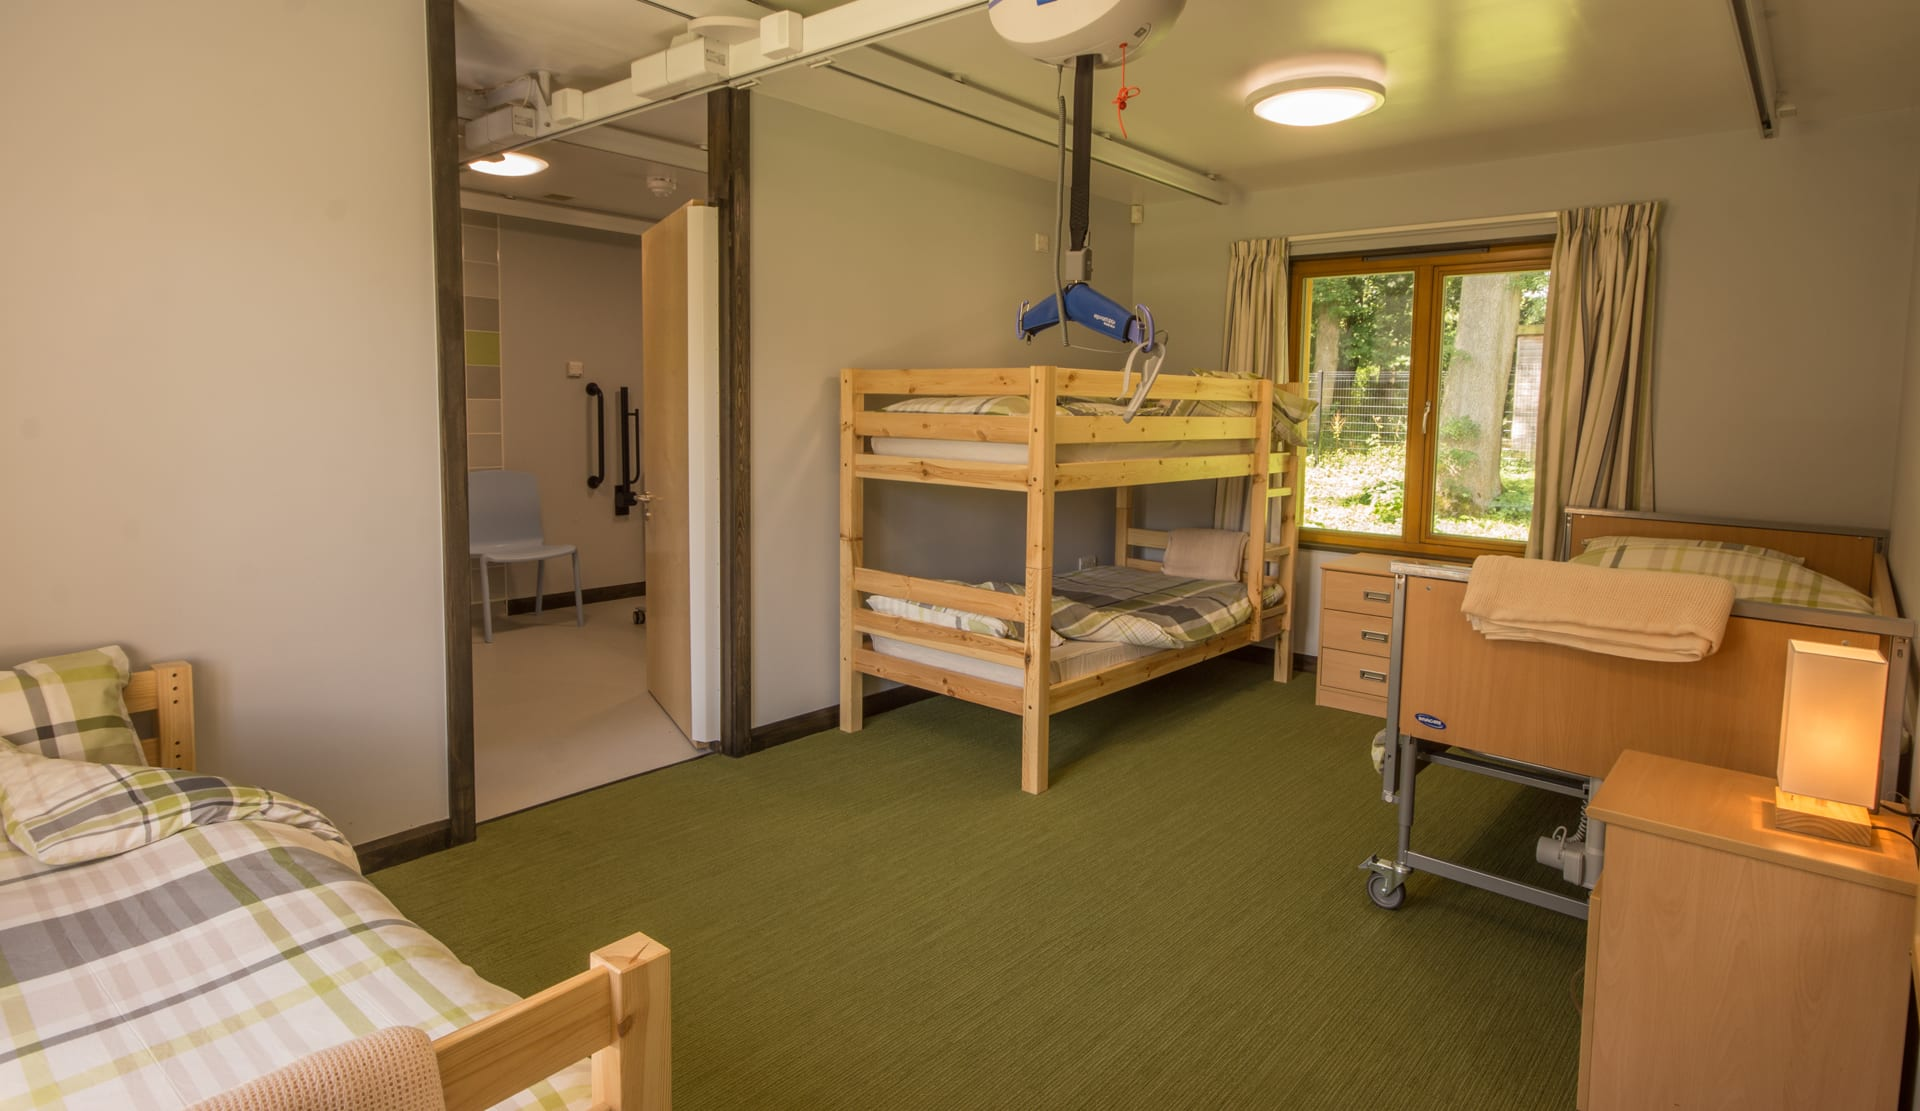 Accessible accommodation : Hostels and bunkhouses